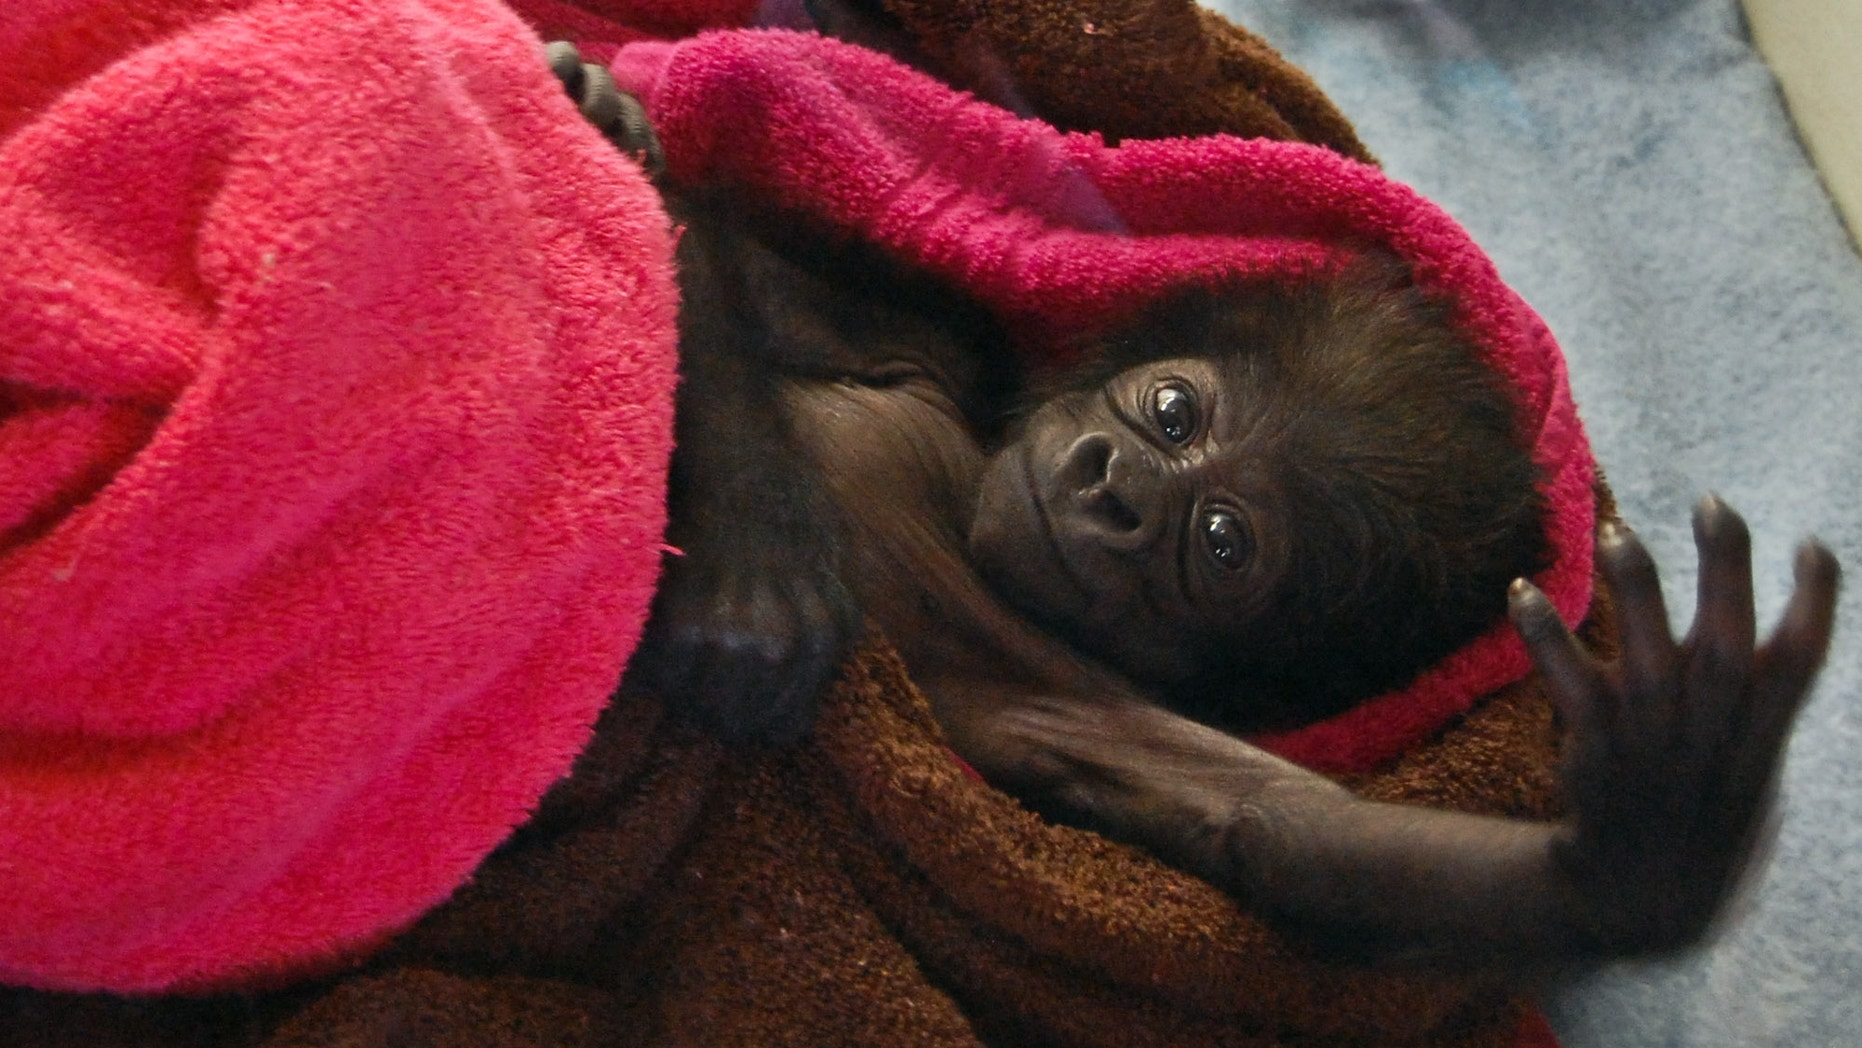 Feb. 15, 2013- Female baby gorilla reaches into the air at the Gladys Porter Zoo in Brownsville, Texas before she was sent to the Cincinnati Zoo.